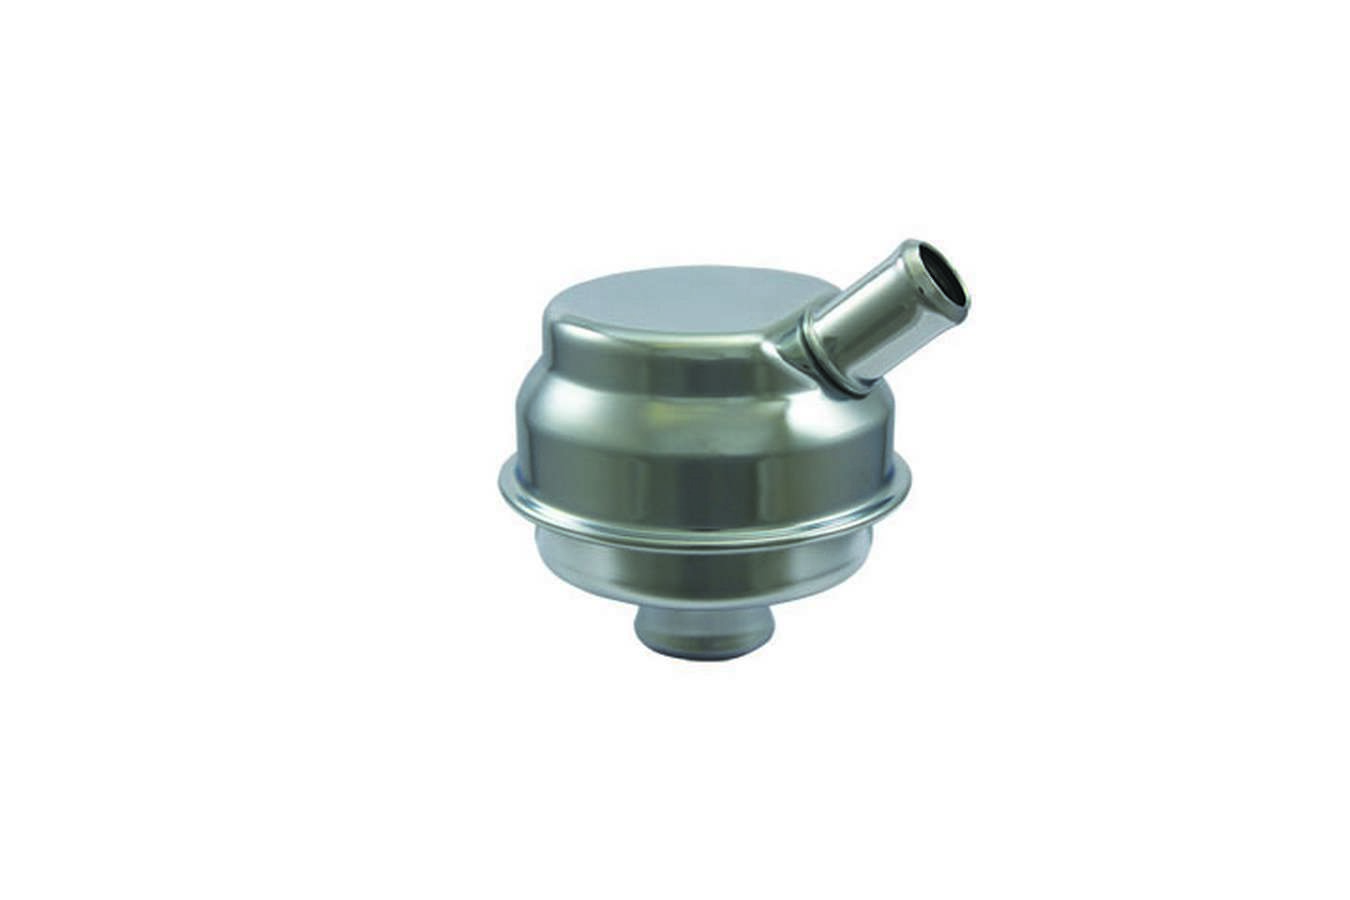 Specialty Products 7275 Breather, Push-In, Round, 1-1/4 in Hole, 5/8 in Hose Evacuation Fitting, Steel, Chrome, Each